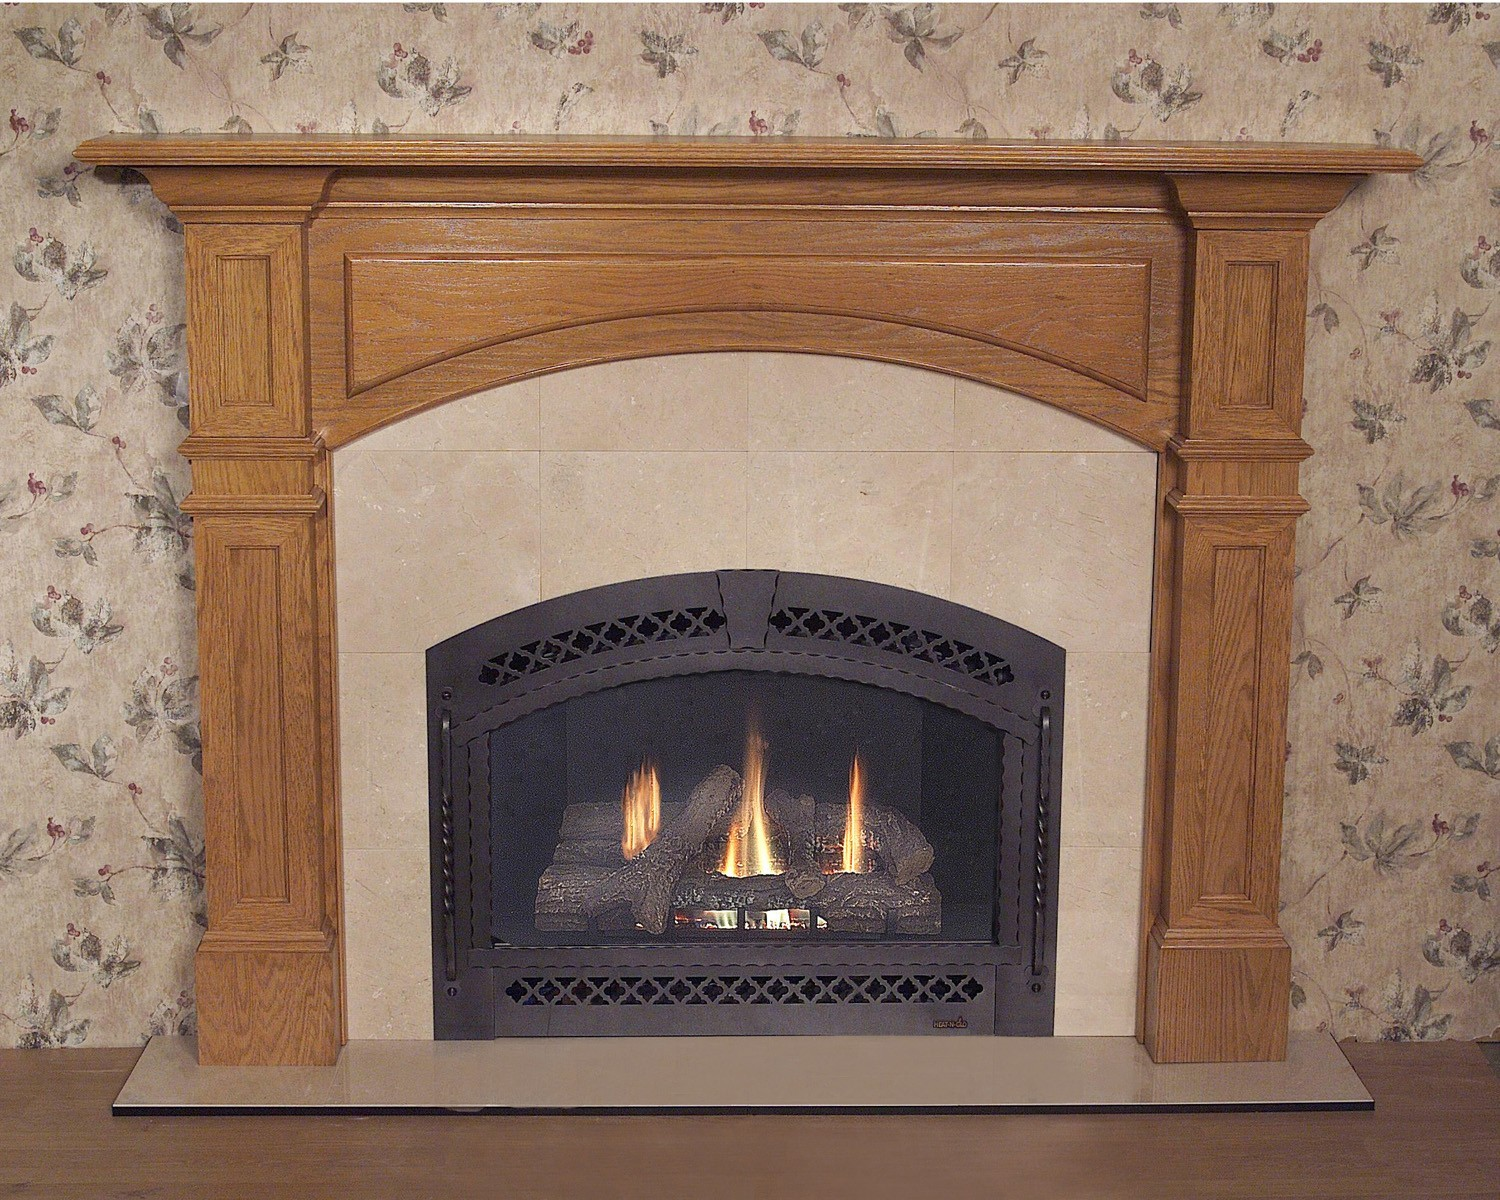 Heat & Glo Announce Recall of Gas Fireplaces | CPSC.gov